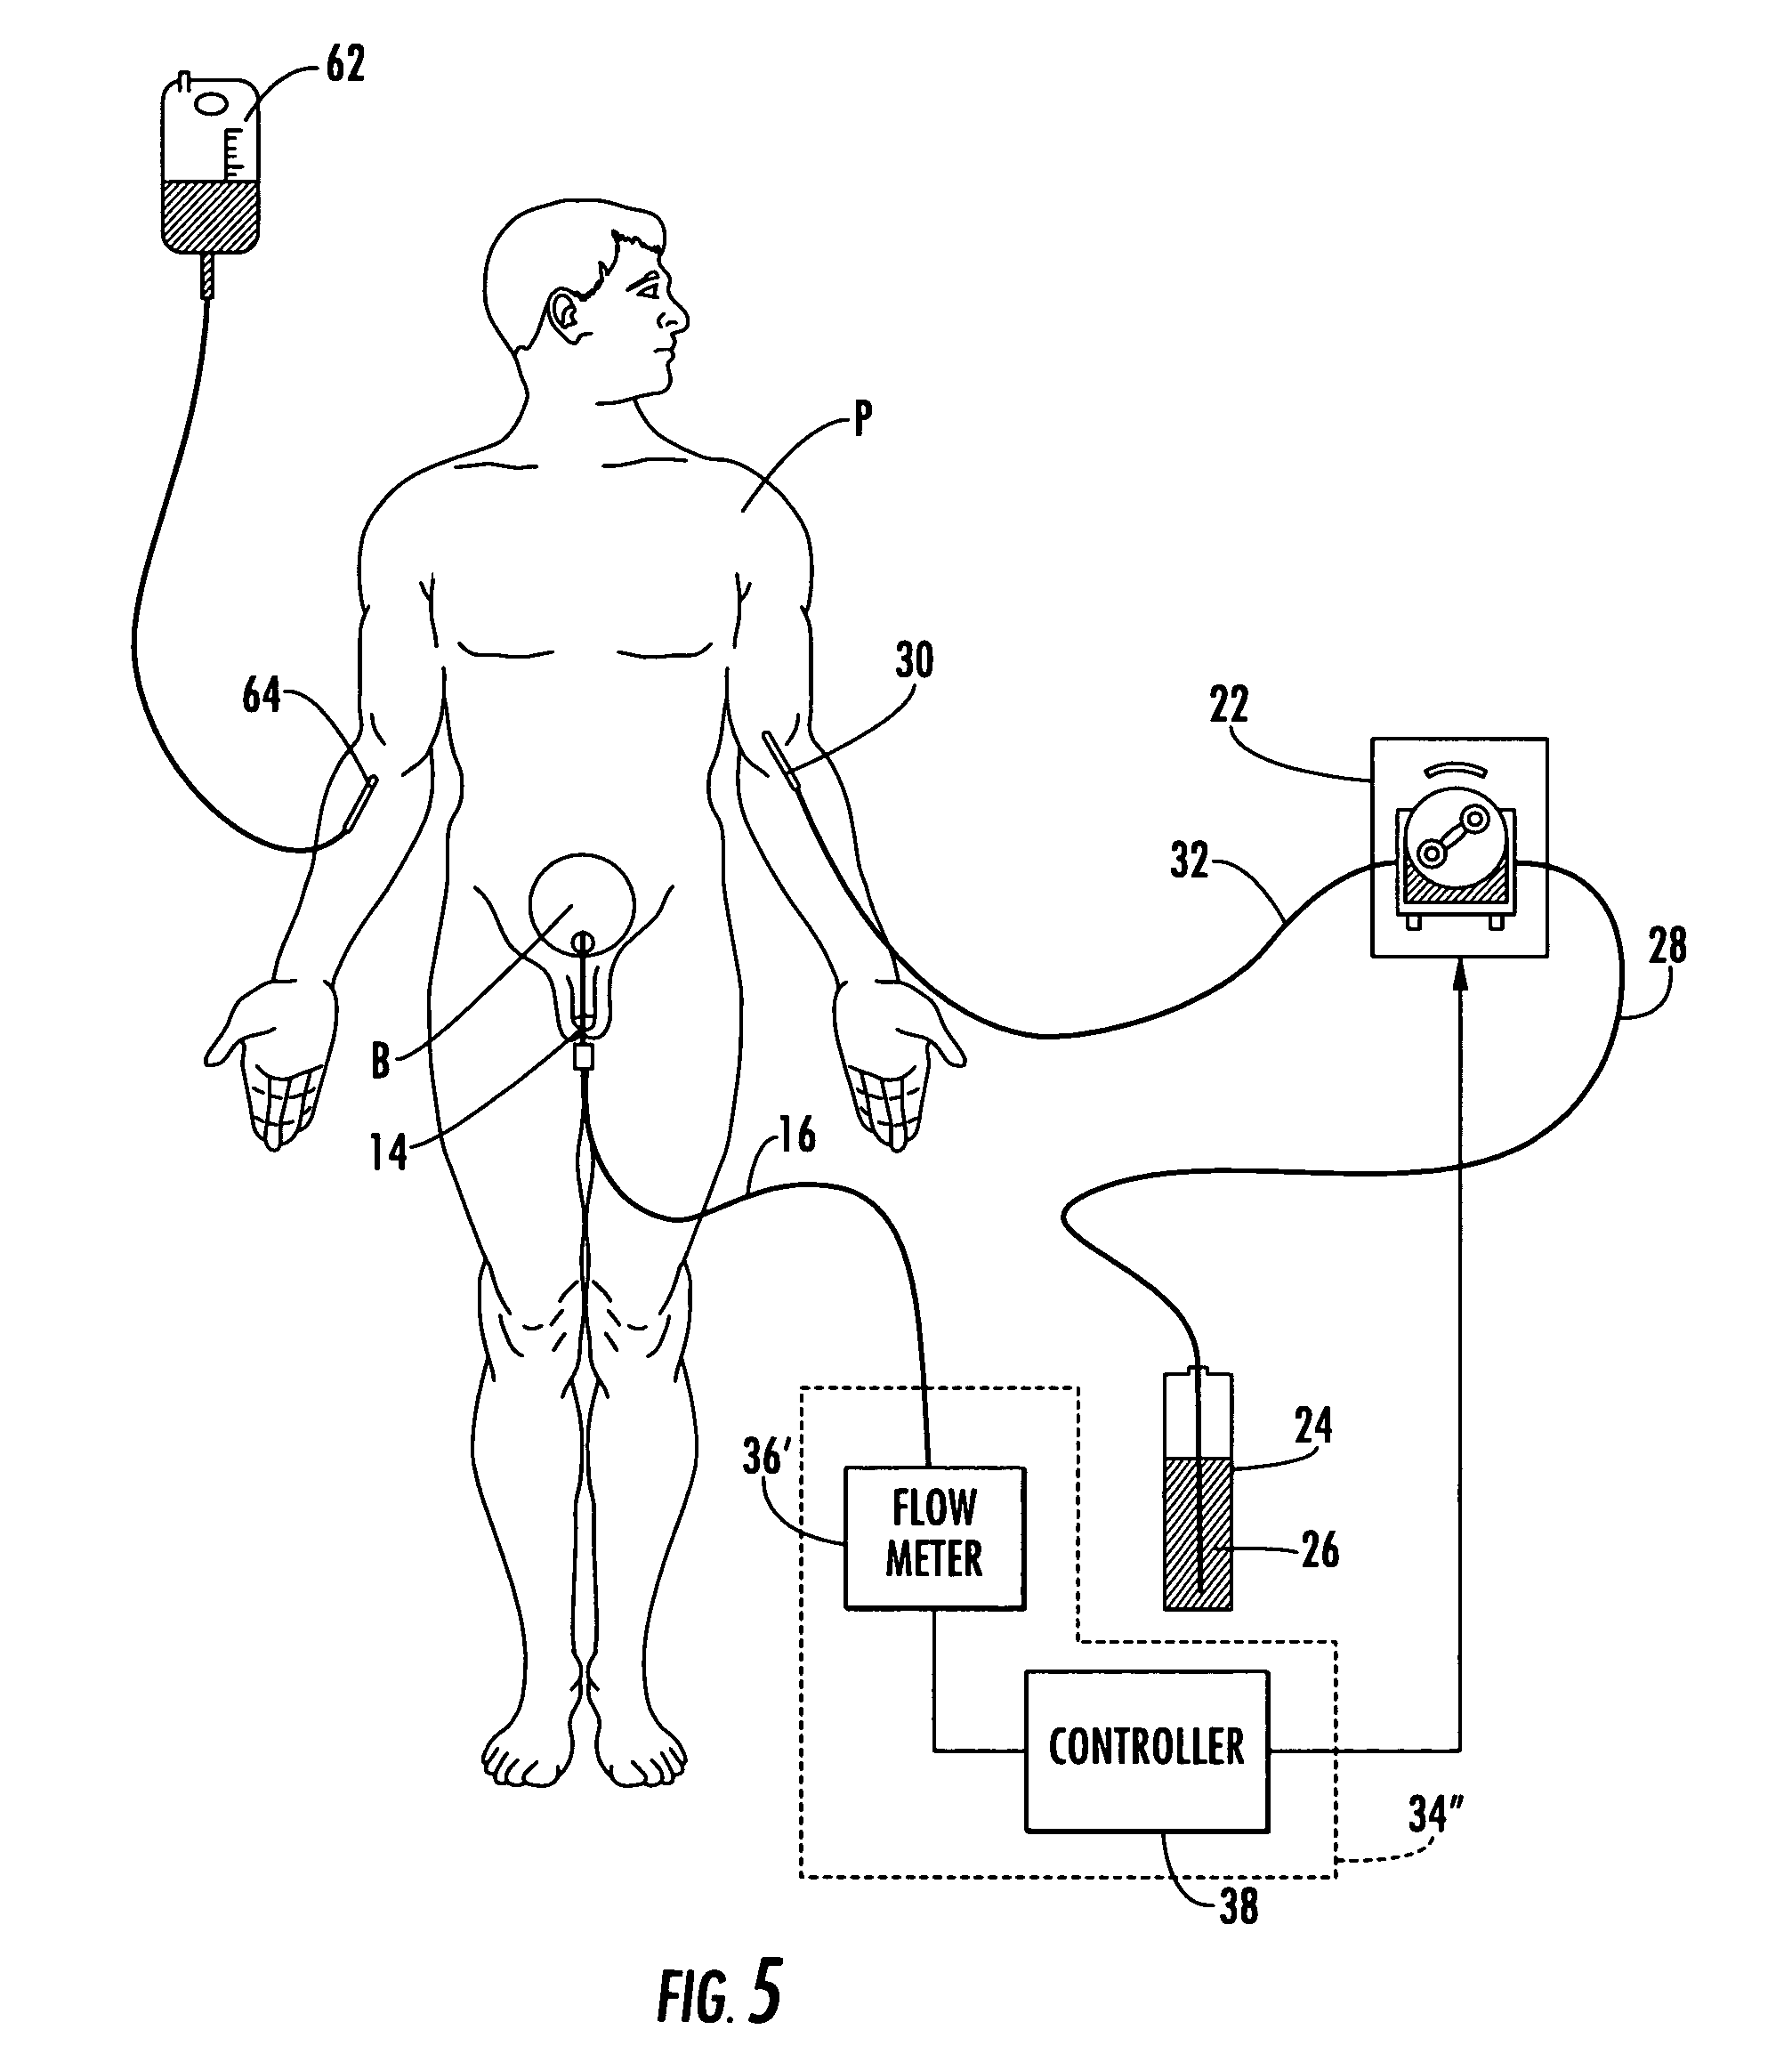 Patent Us7837667 Patient Hydration System With Abnormal Condition 1950 Plymouth Wiring Diagram Drawing